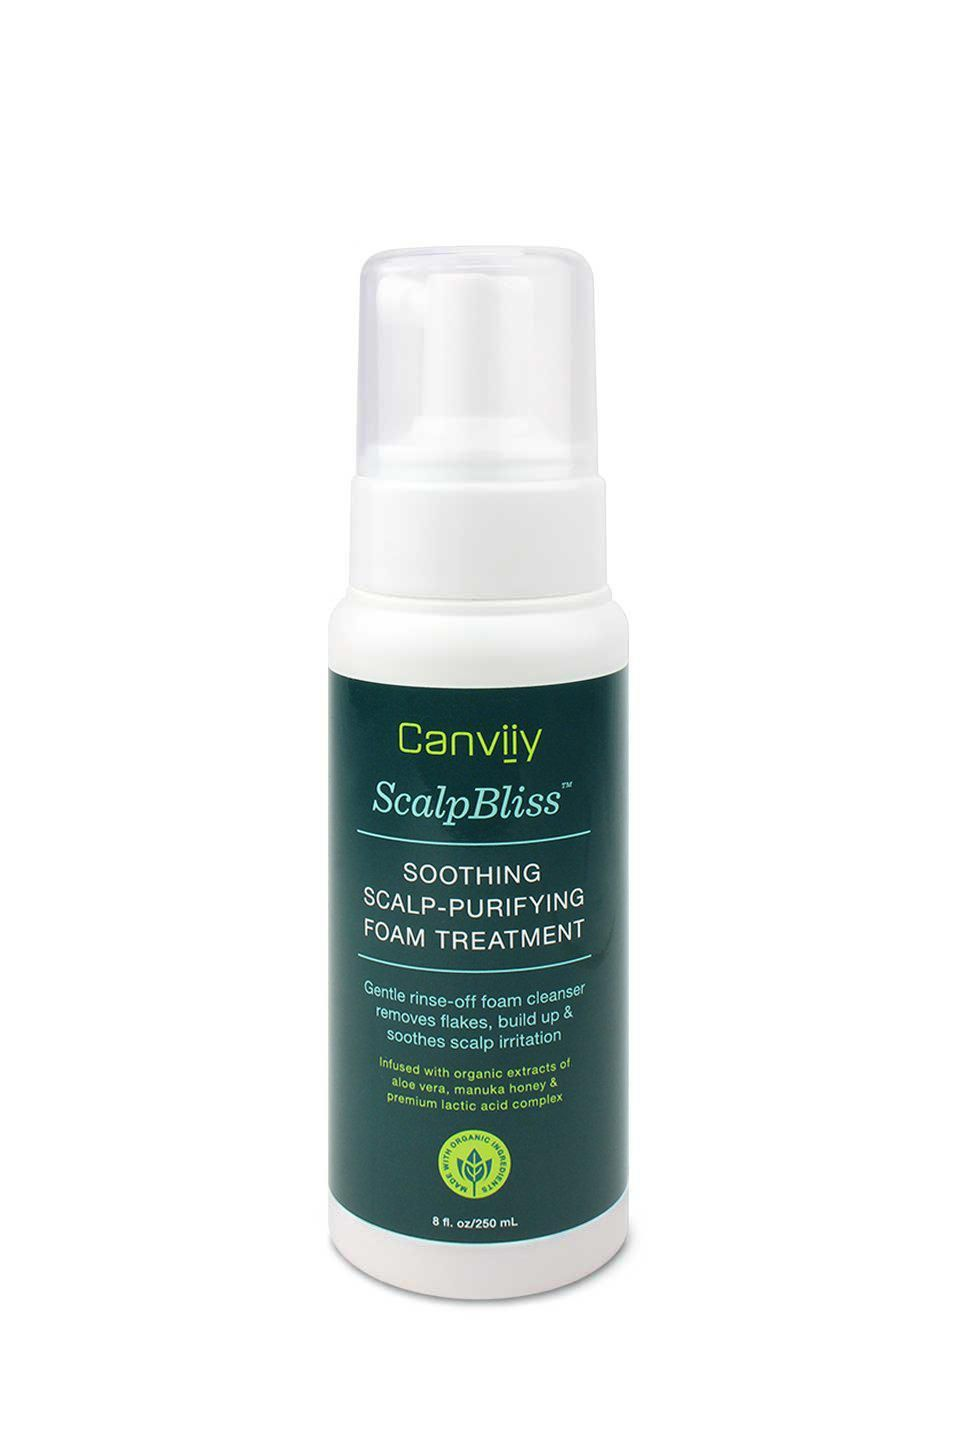 Canviiy ScalpBliss Soothing Scalp-Purifying Foam Treatment